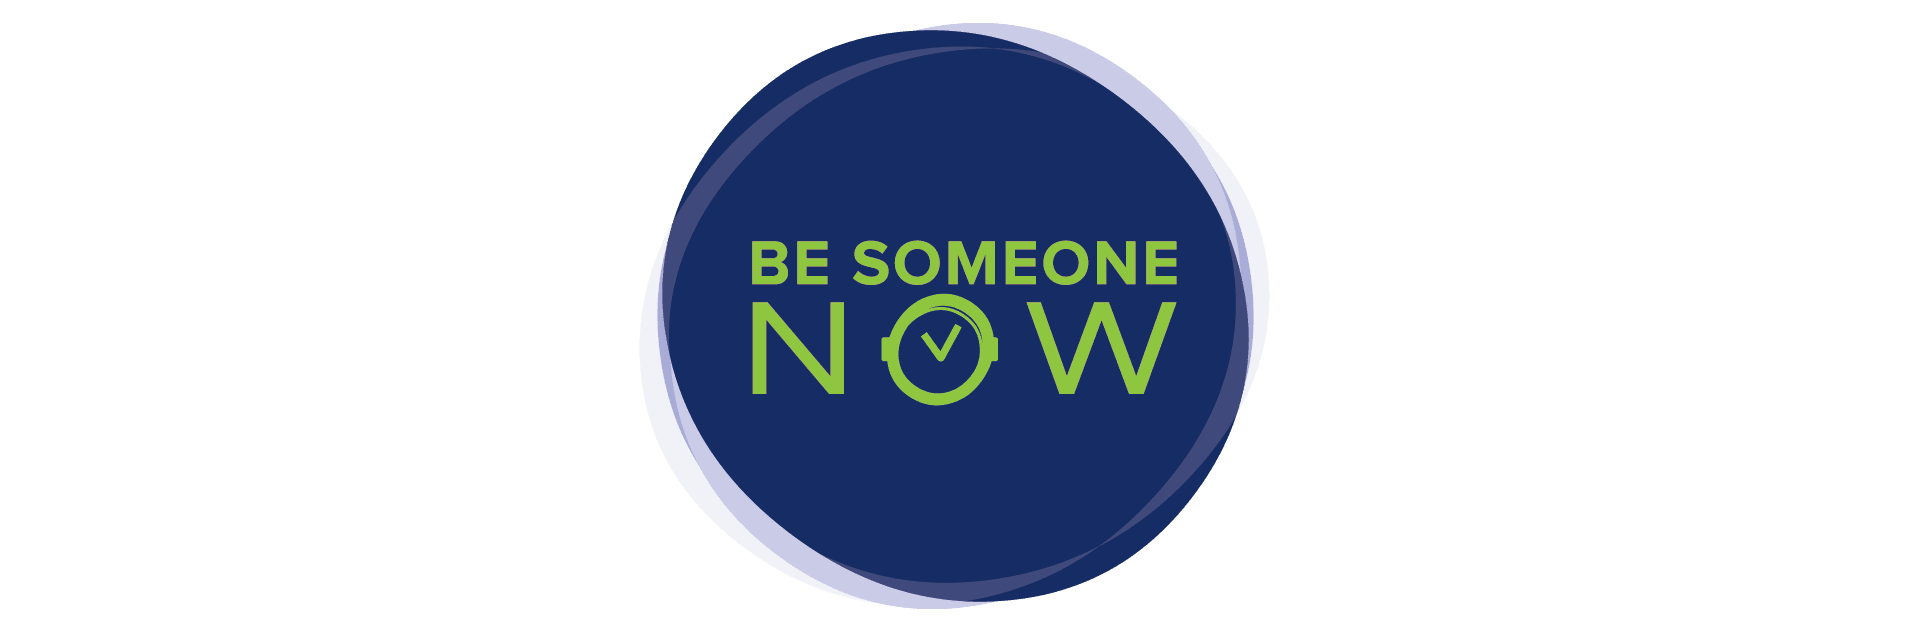 Be-Someone-Now-Scan-Inc-Navy-And-Green-BSON-Circle-Logo